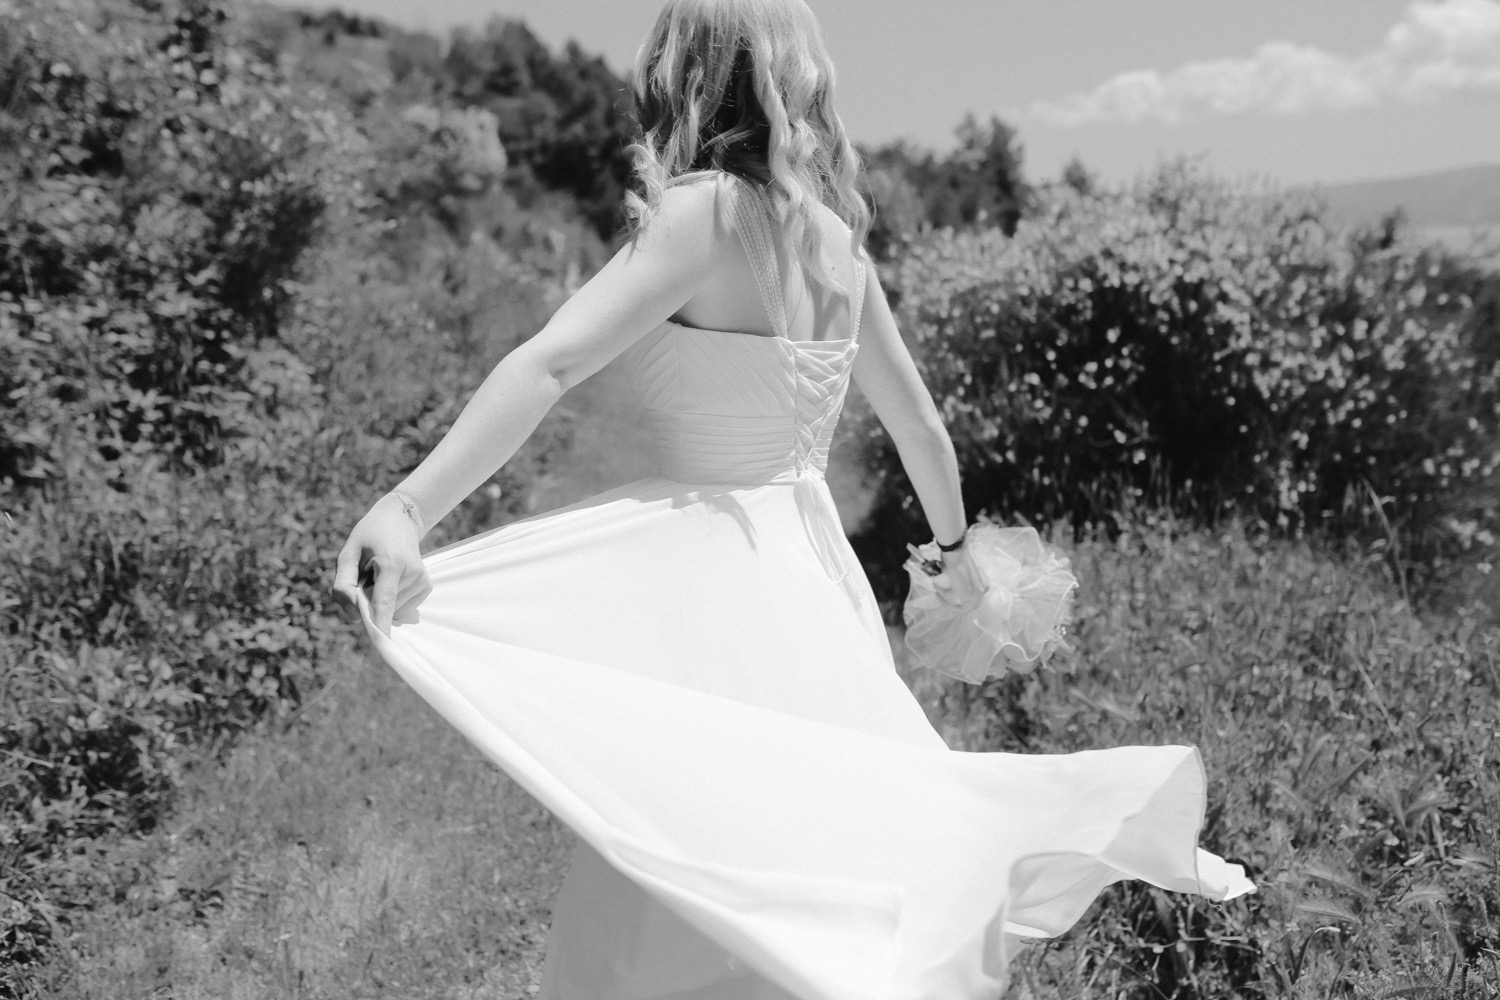 Croatia beach elopement hilke thomas love and ventures photography 57 | Croatia Elopement Photographer and Videographer